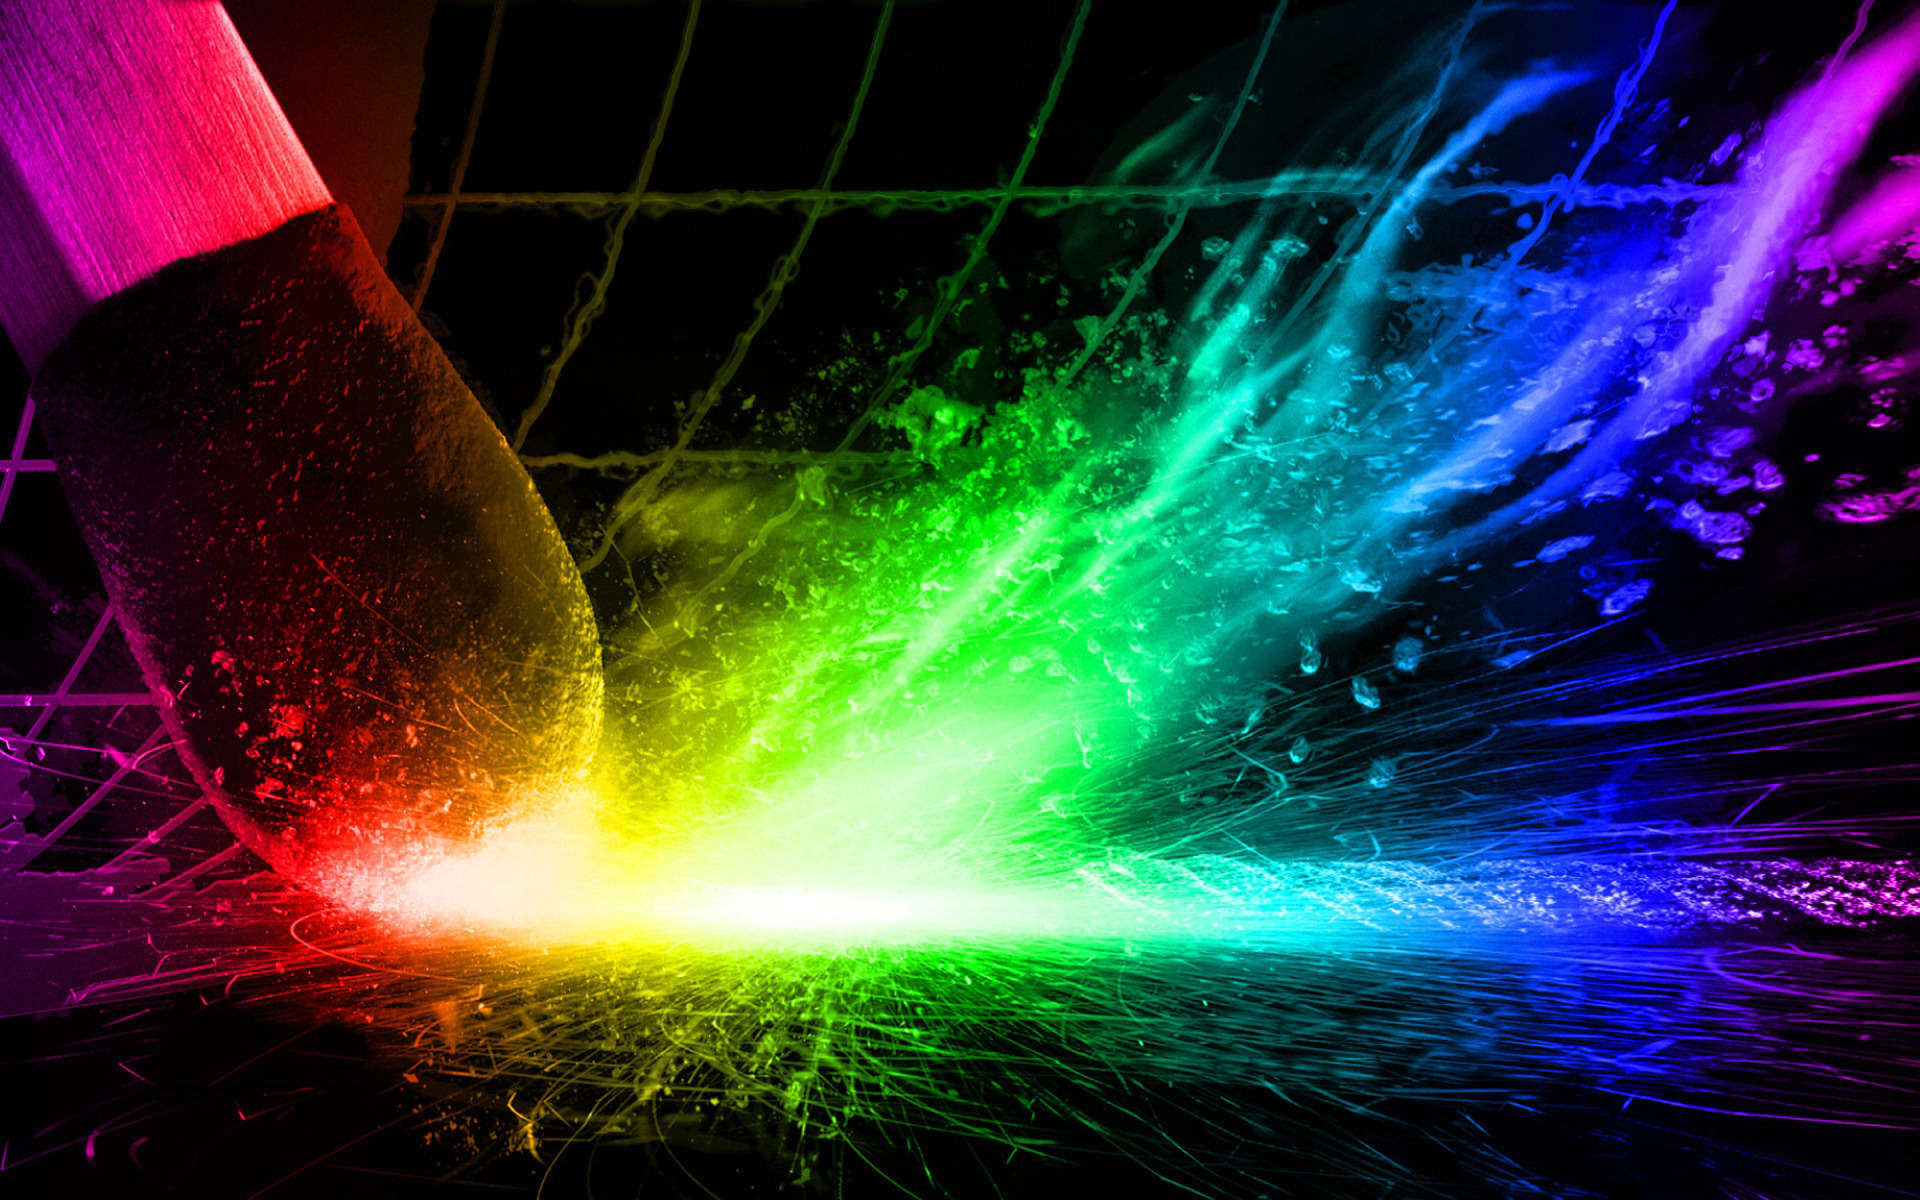 Colorful 3D Arts Wallpaper